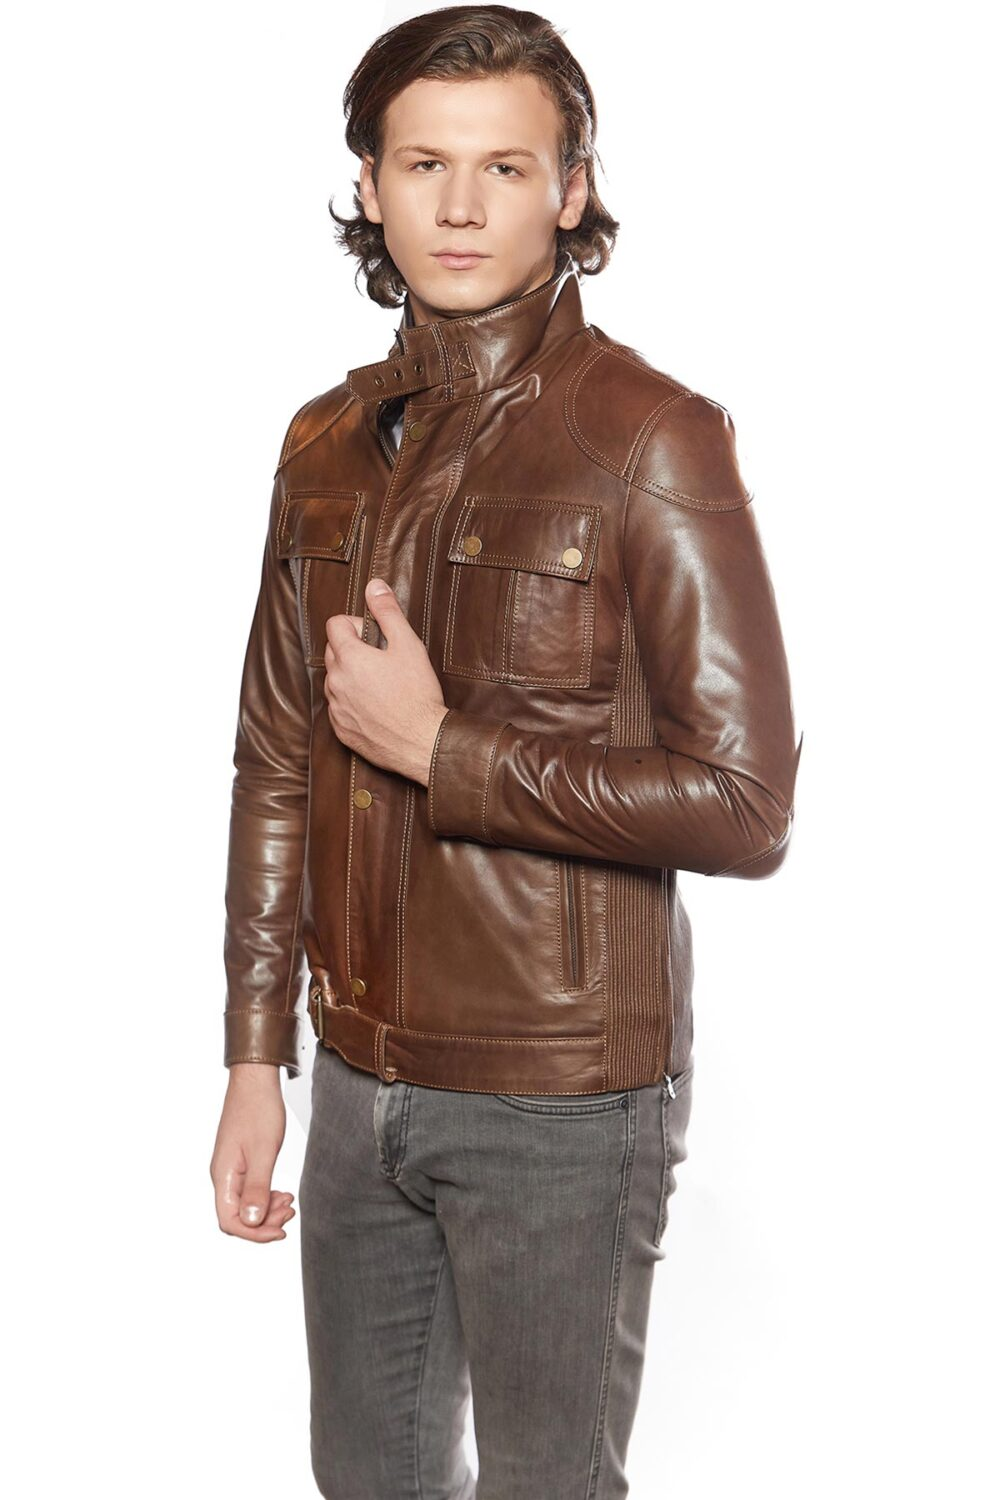 where is the best place to buy leather jackets